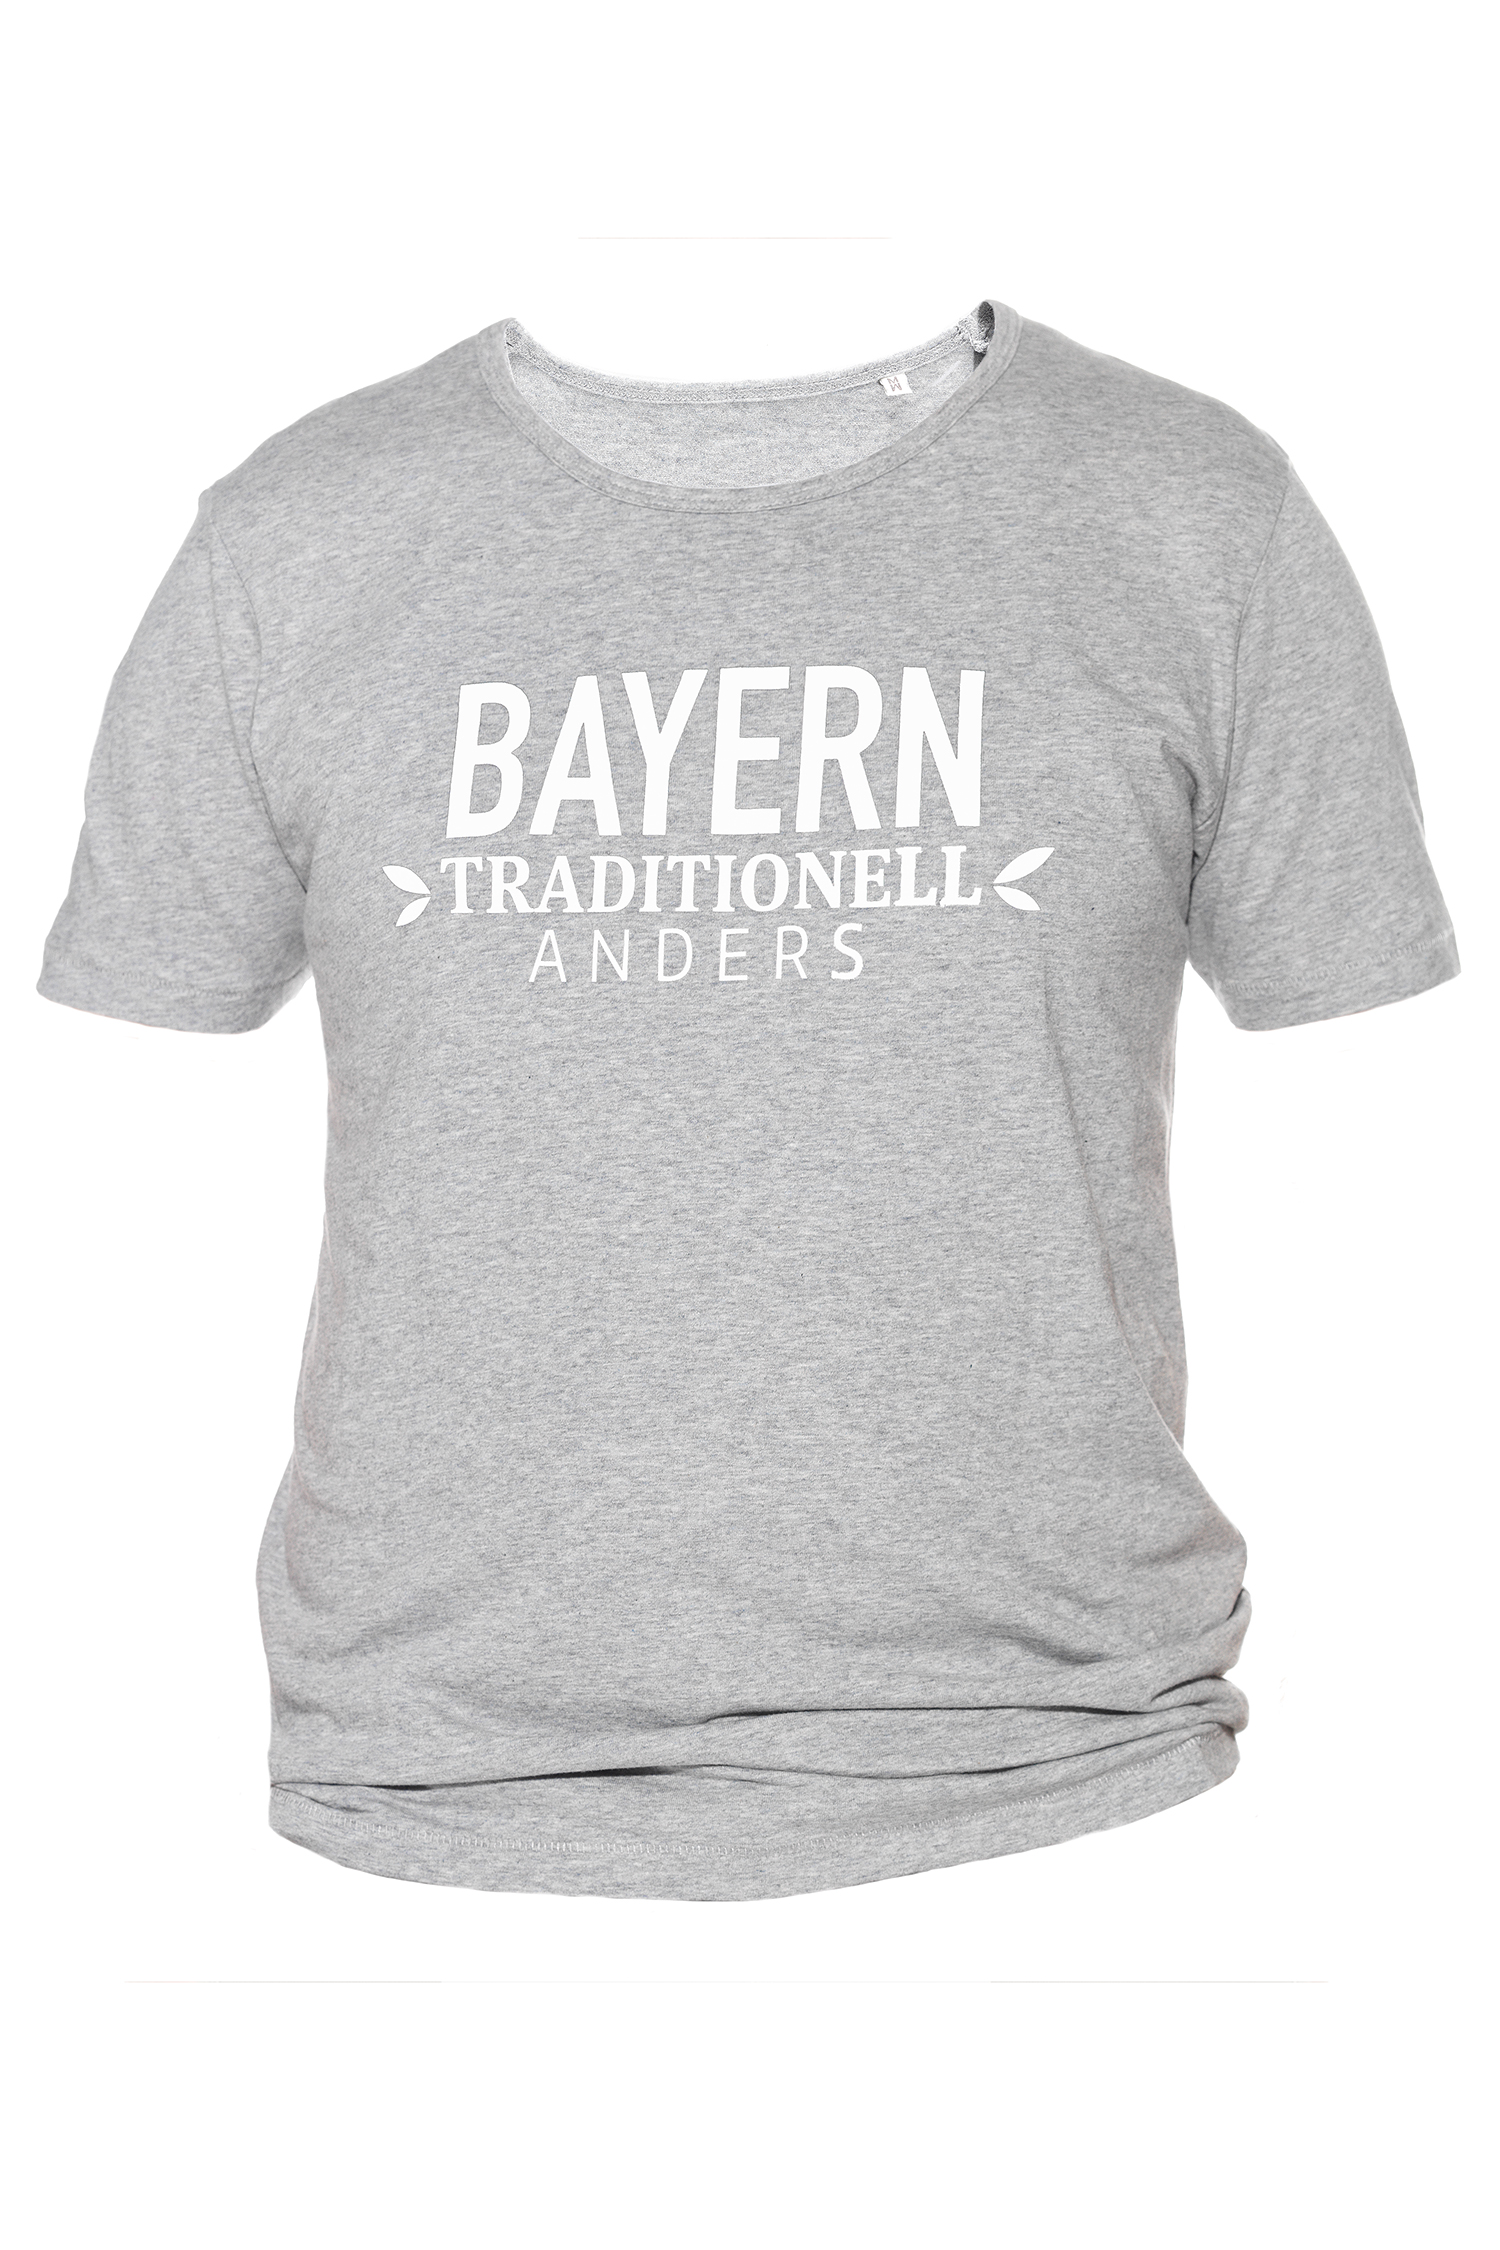 T-Shirt Bayern traditionell anders